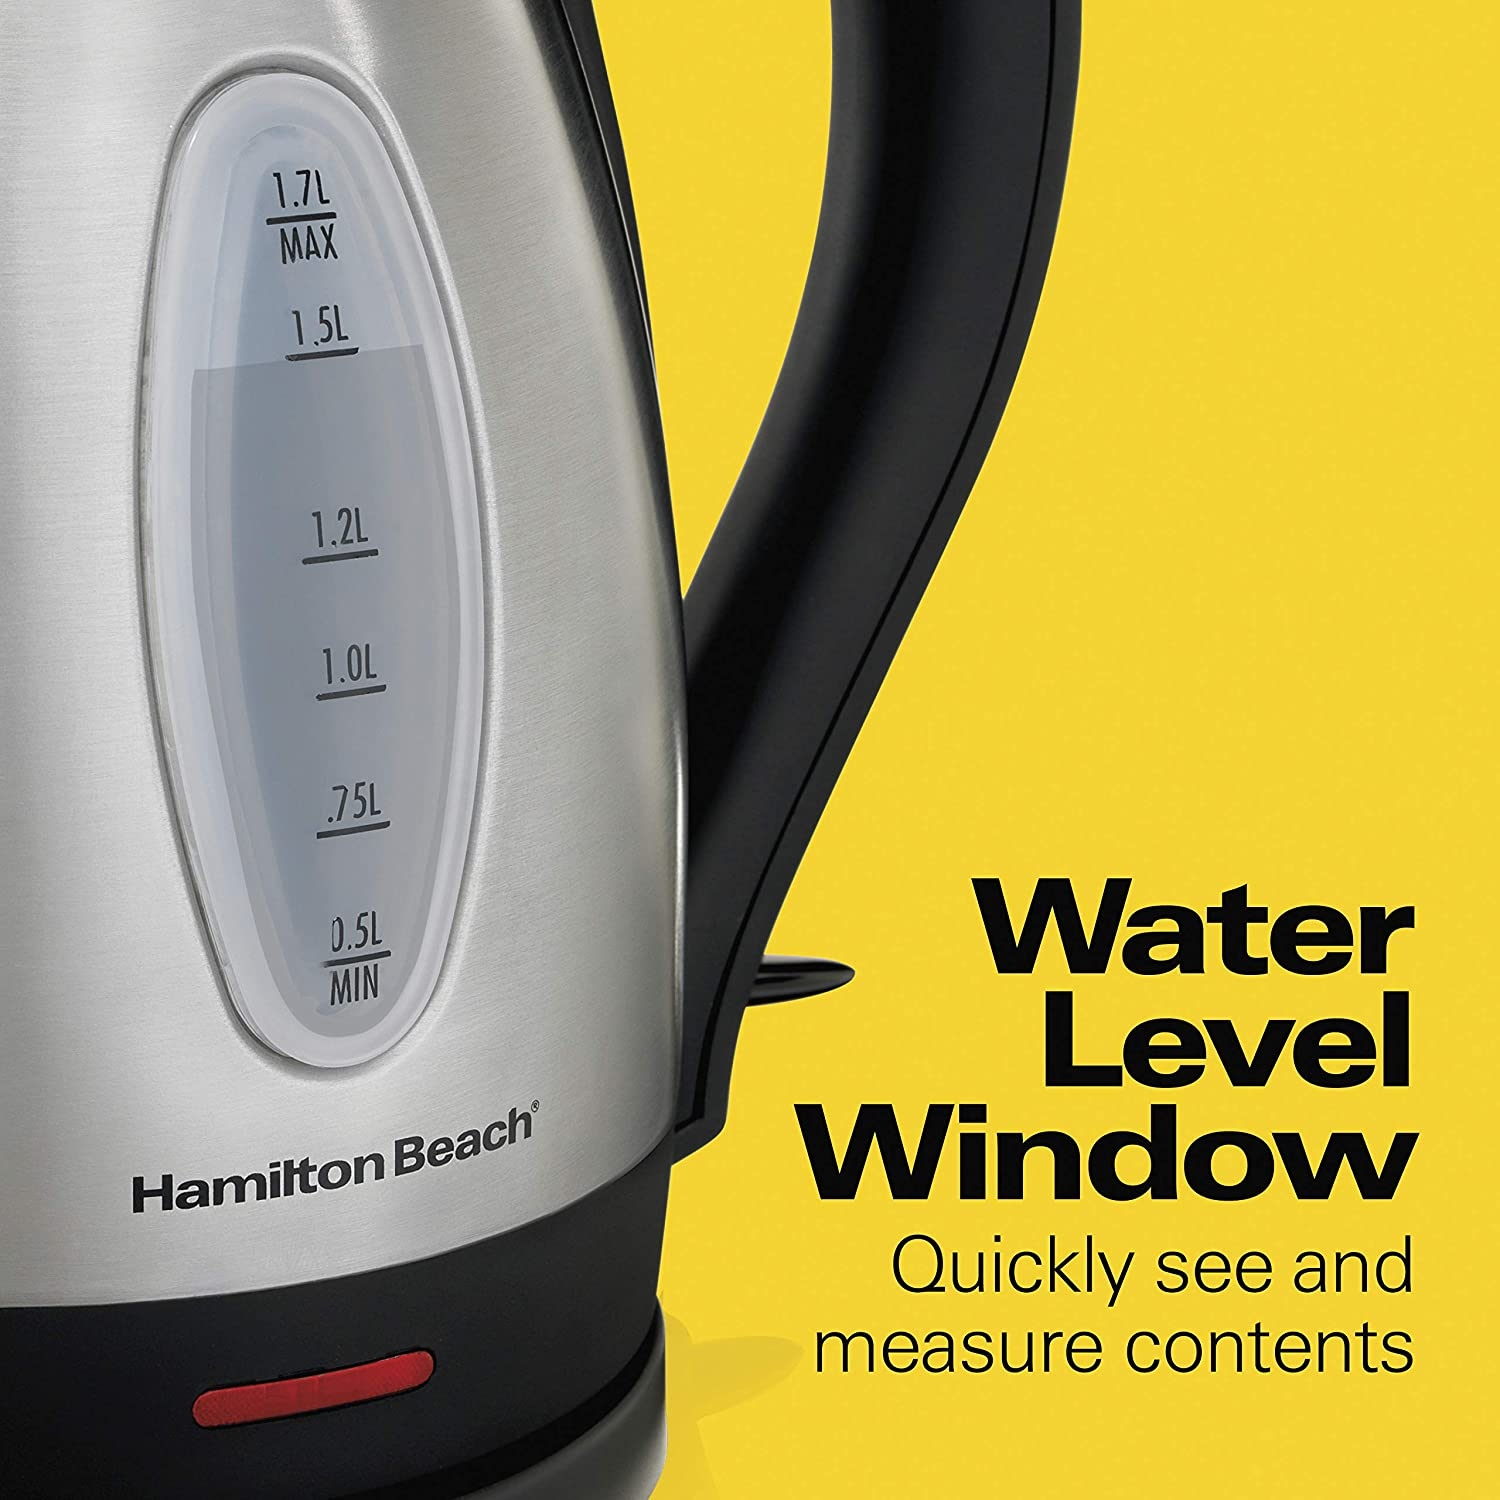 Hamilton Beach Electric Tea Kettle, Water Boiler & Heater, 1.7 L, Cordless, Auto-Shutoff and Boil-Dry Protection, Stainless Steel (40880): Kitchen & Dining